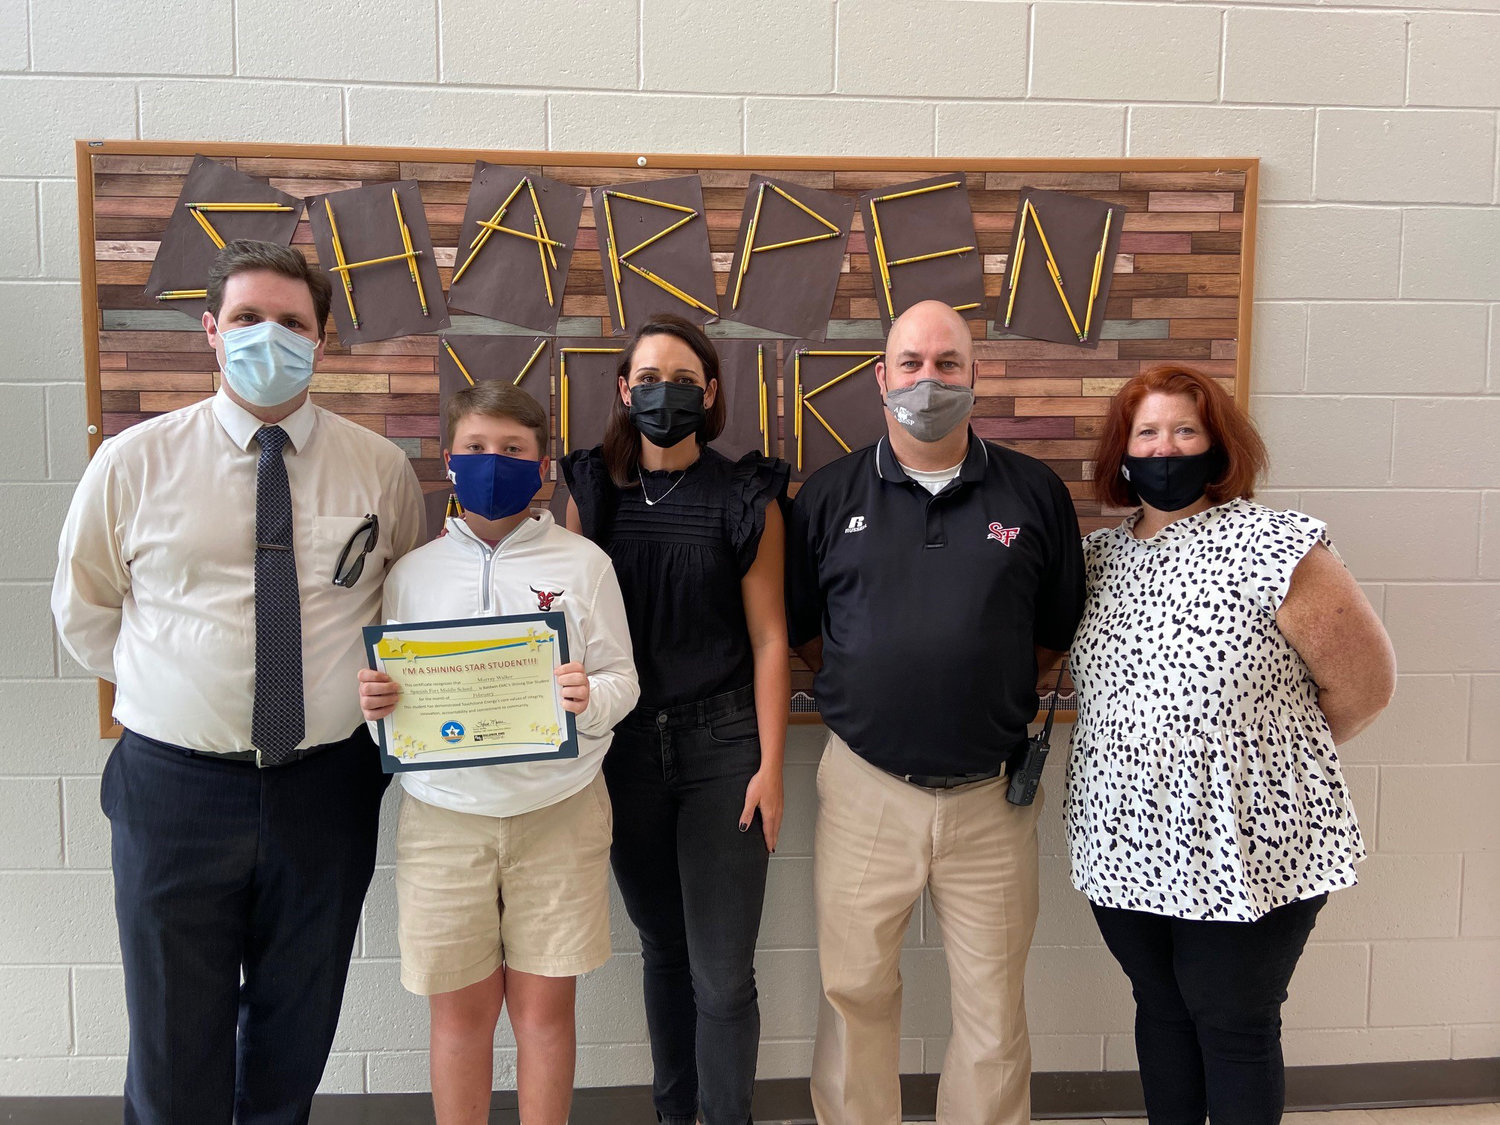 Spanish Fort Middle School student Murray Walker (holding certificate) is pictured with (l-r) FOX 10 TV's meteorologist Michael White, teacher Anna Hunt, Principal Oliver Sinclair, and mother Leigh Walker.